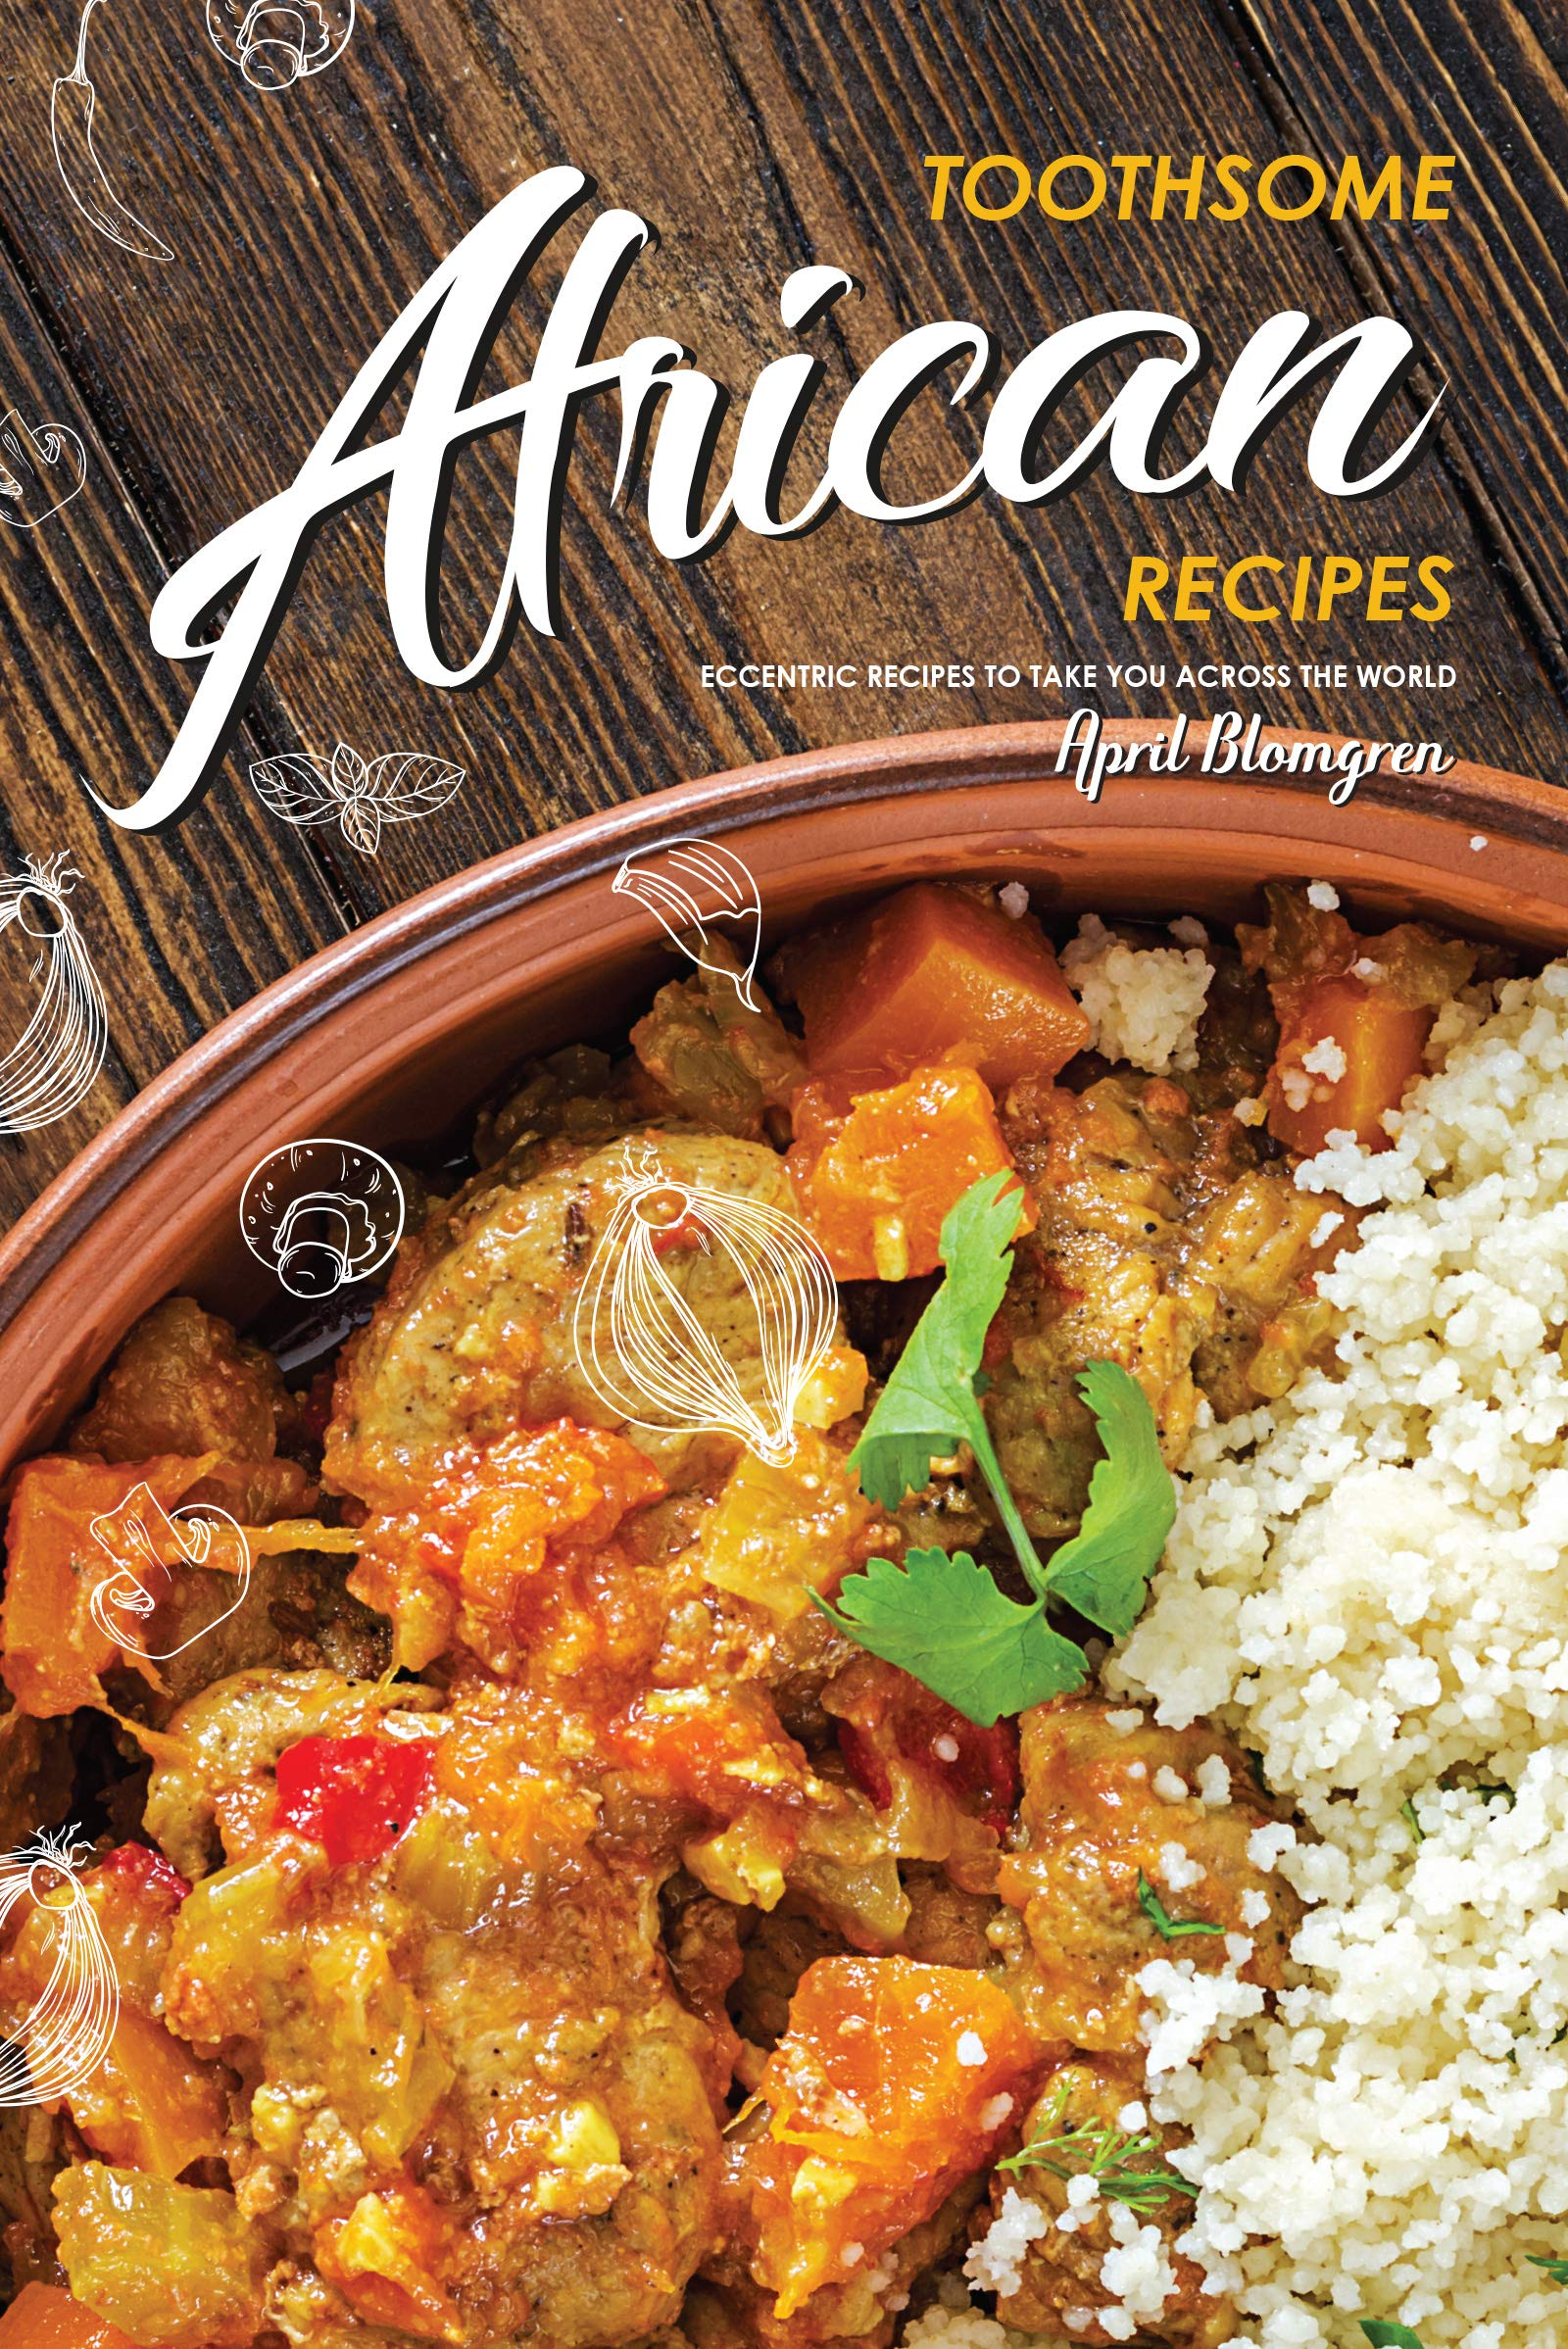 Toothsome African Recipes  Eccentric Recipes To Take You Across The World  English Edition